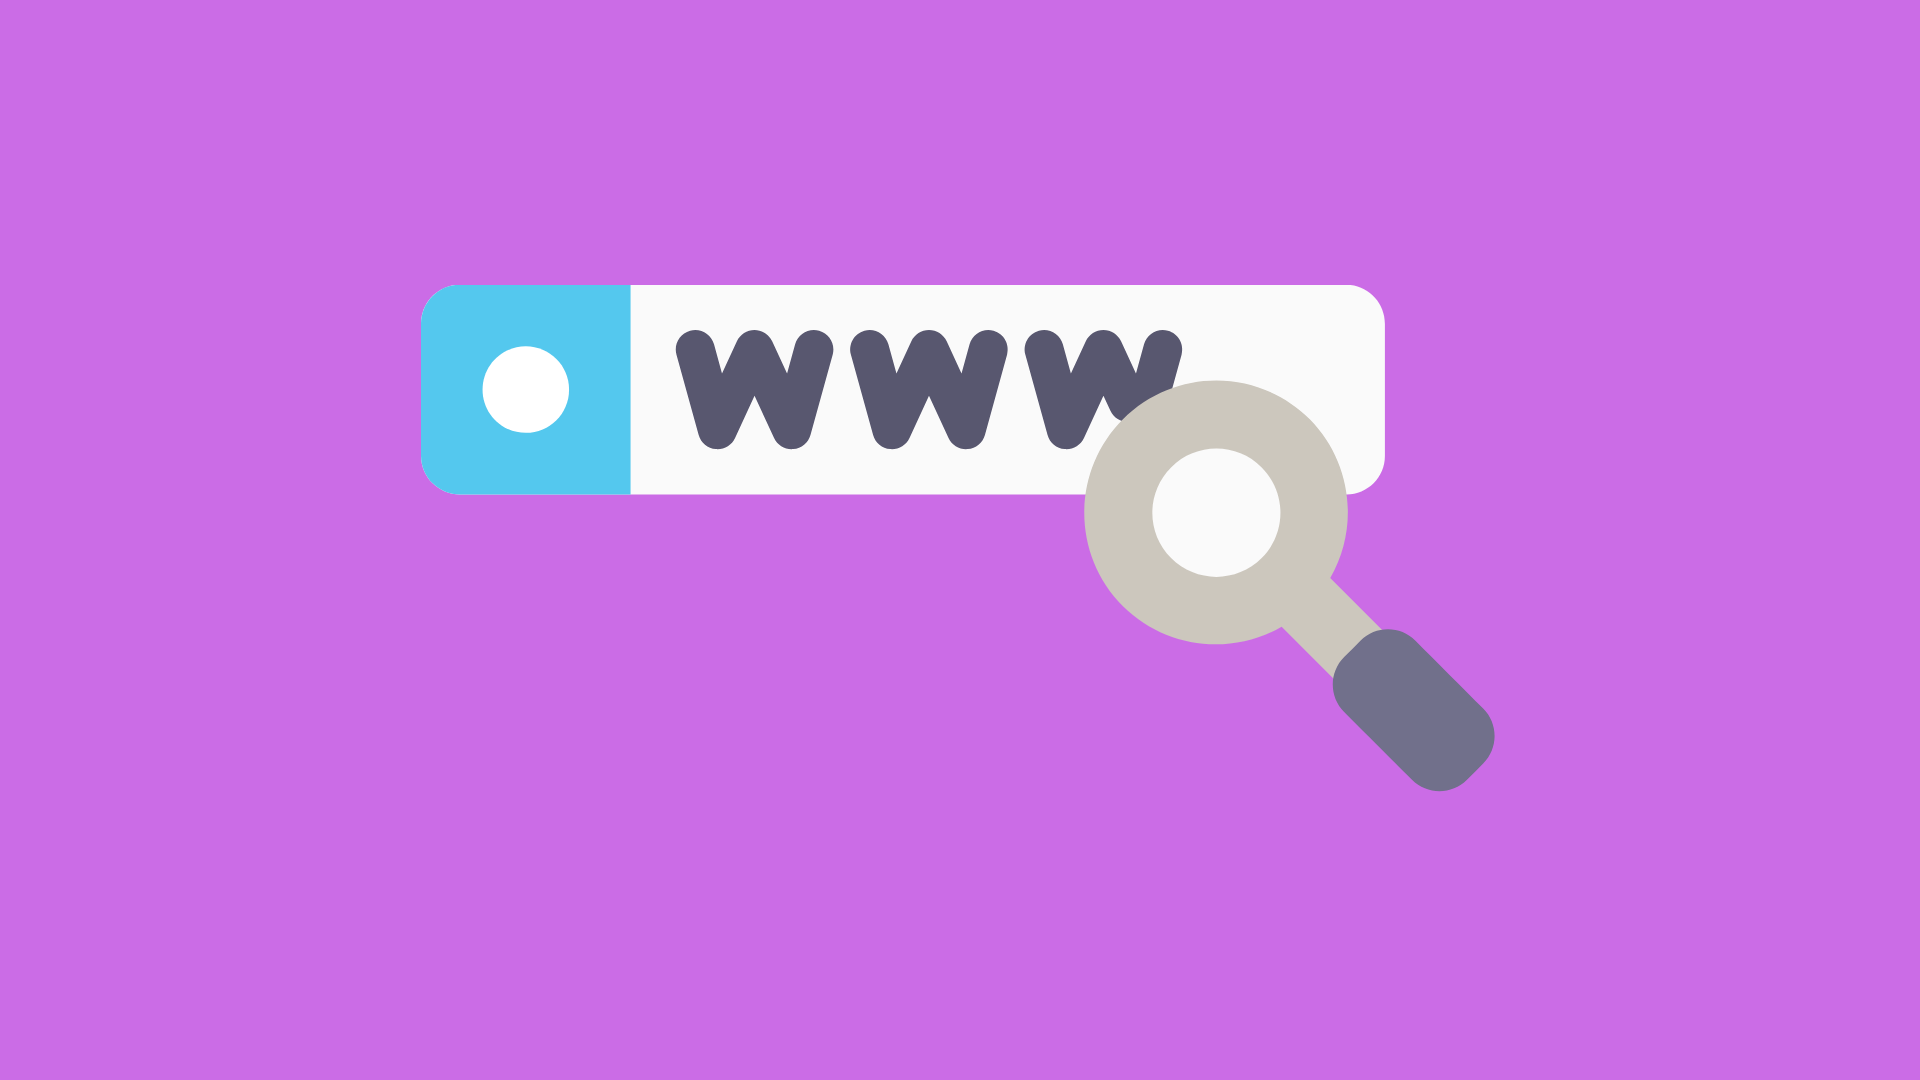 illustration of a magnifying glass over a url